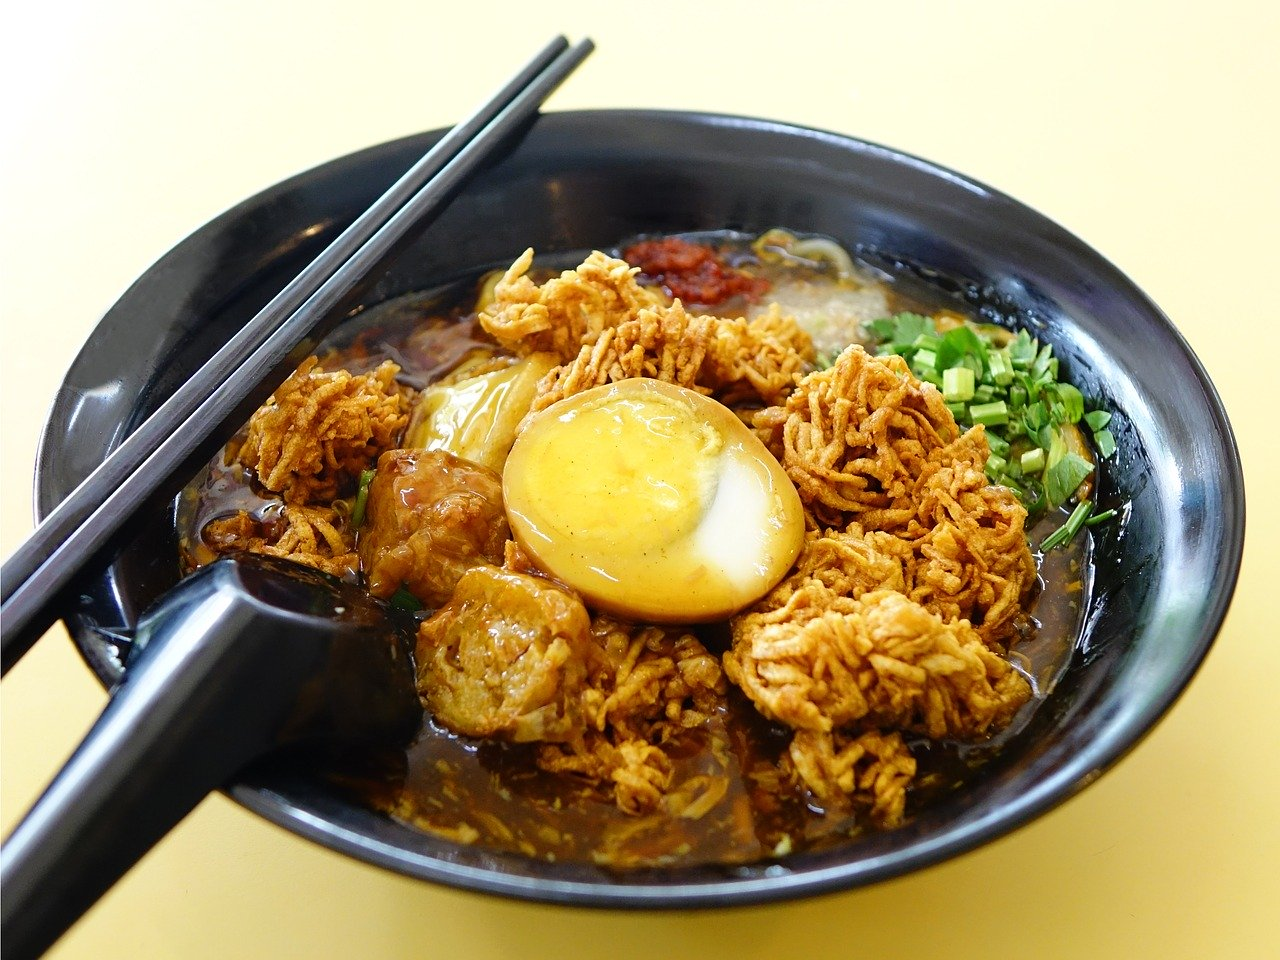 Lor Mee is a popular breakfast food in Singapore. Discover the food in Singapore and amazing Singaporean dishes to eat from this article